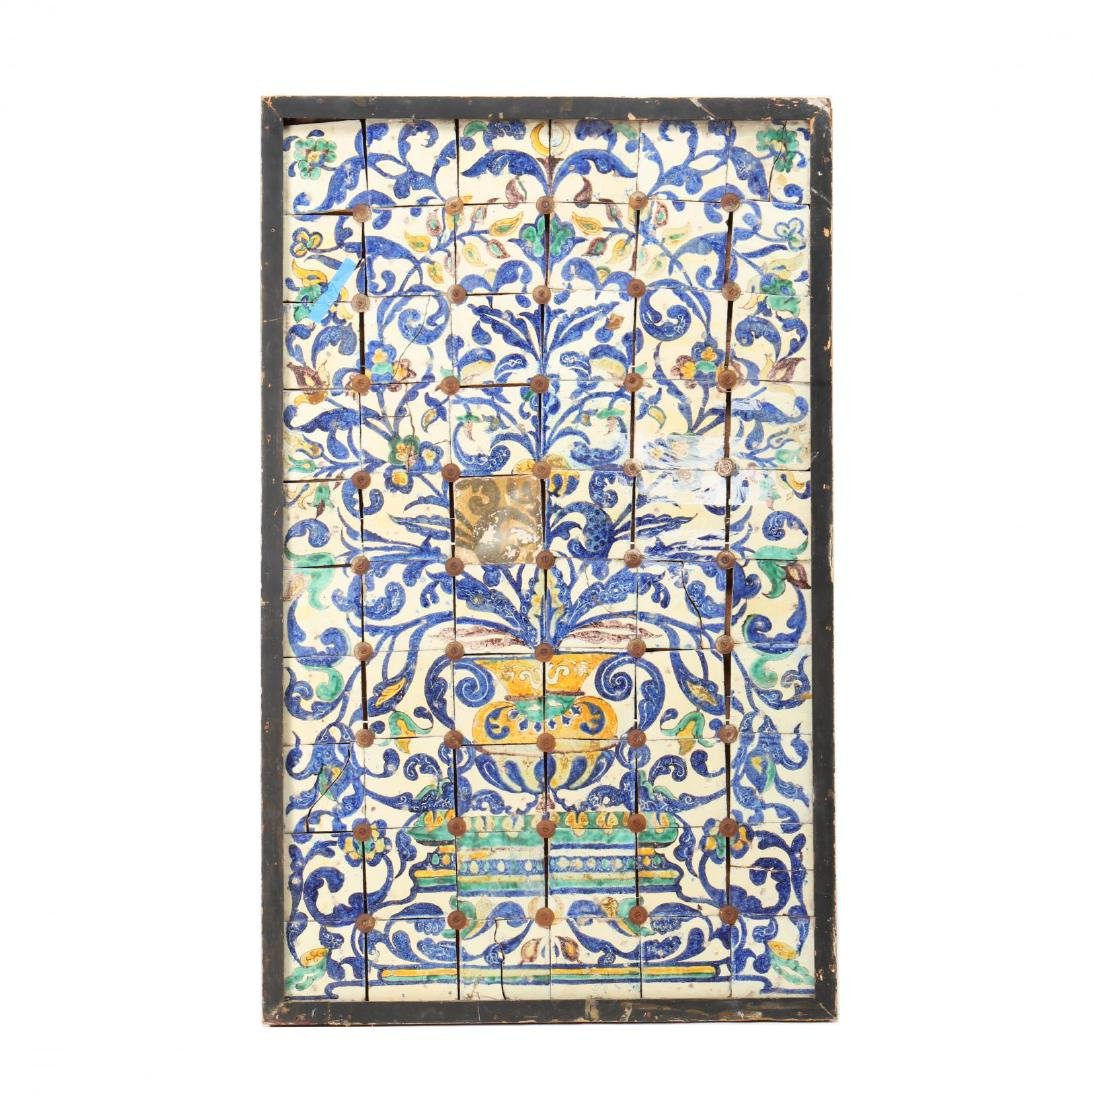 Spanish Polychromed Tile Architectural Panel